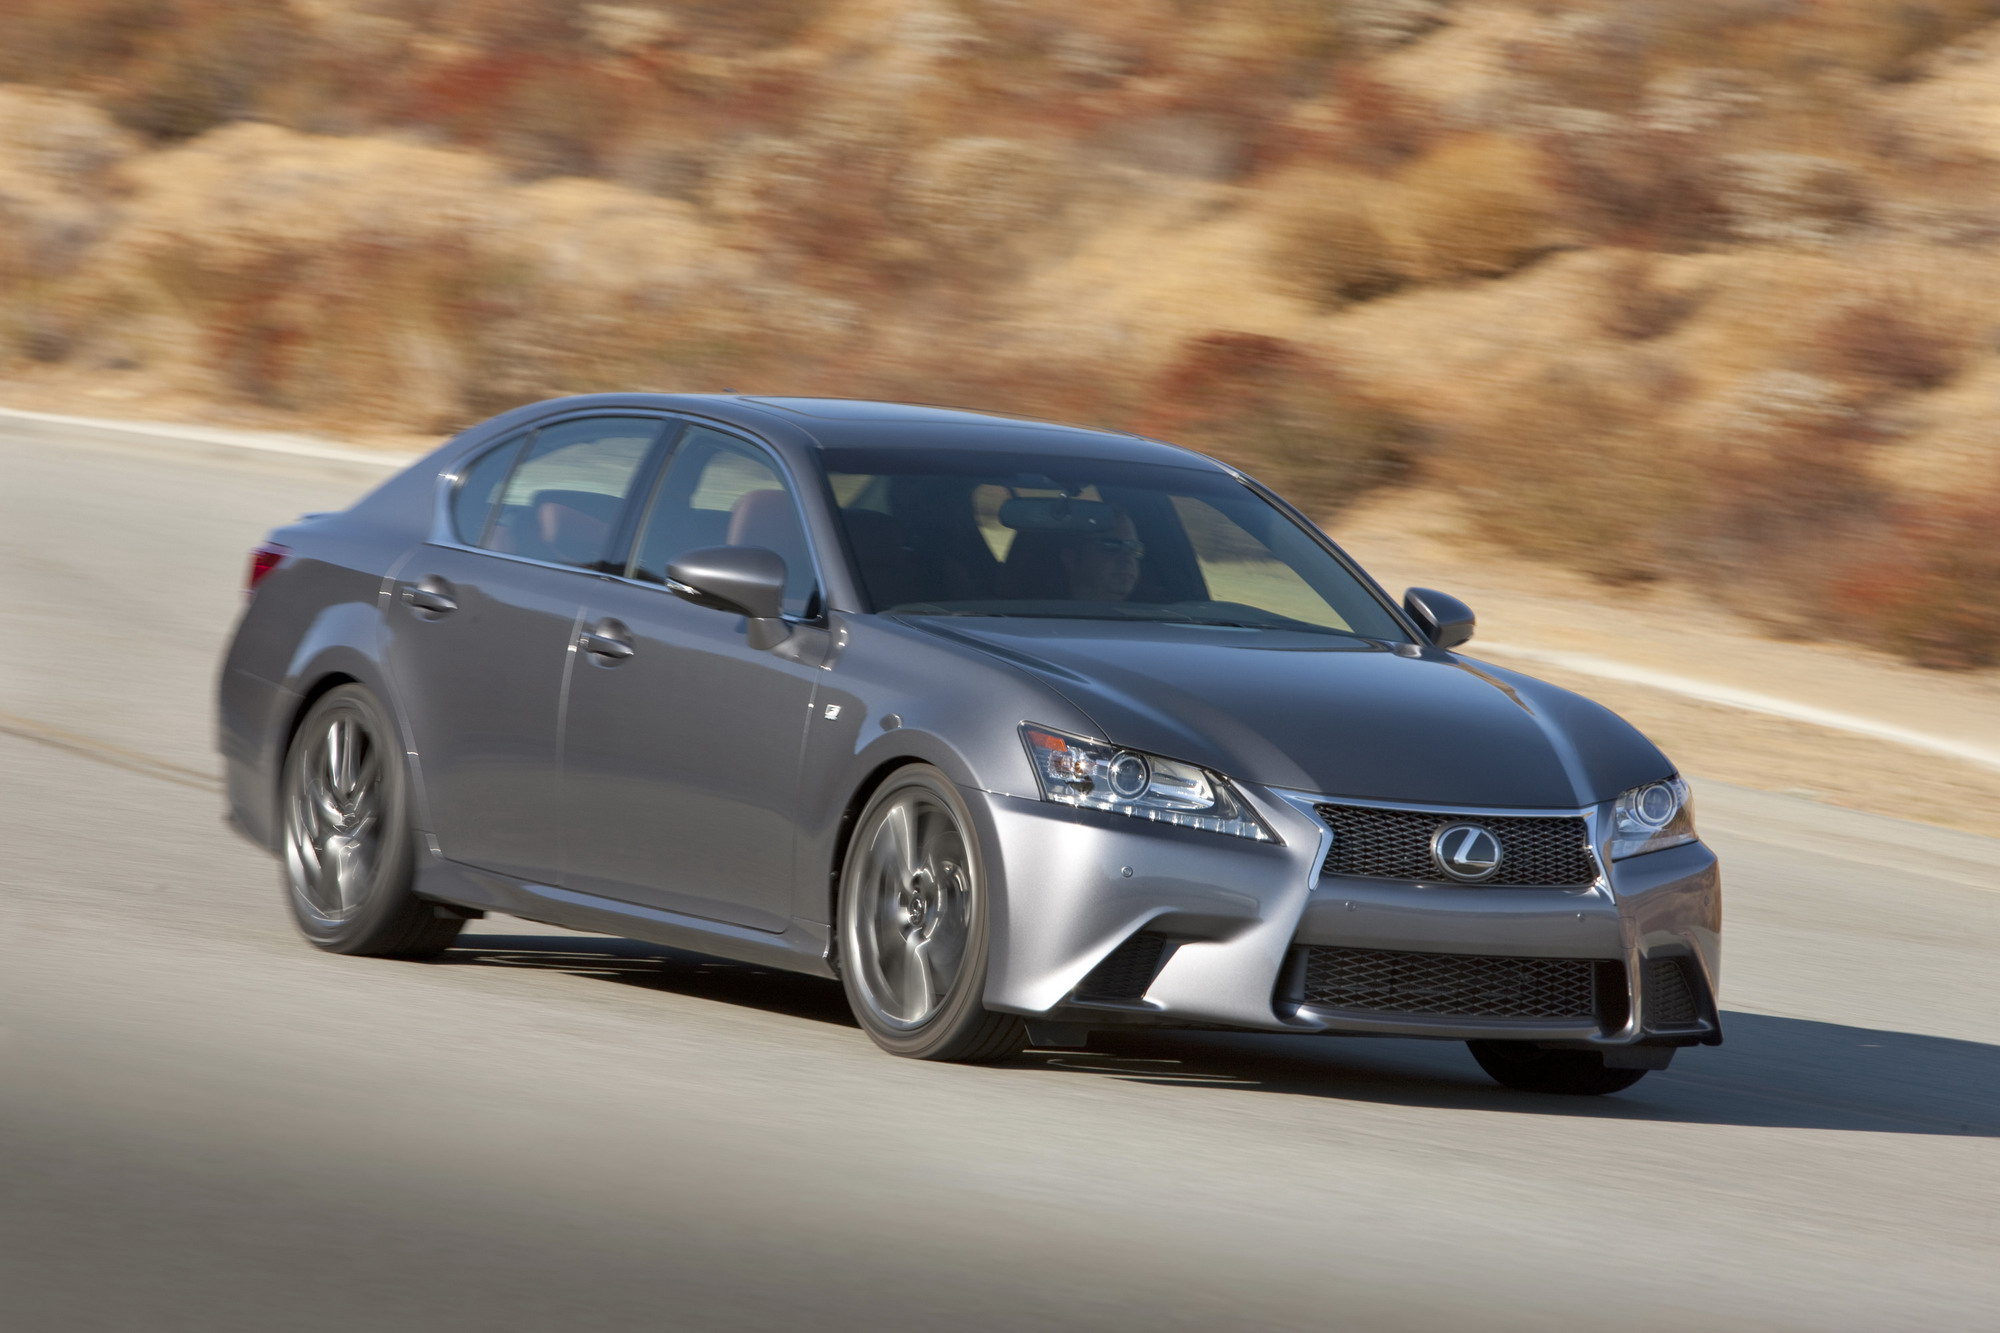 prevnext lexus motor f first reviews profile gs test sport truck side trend